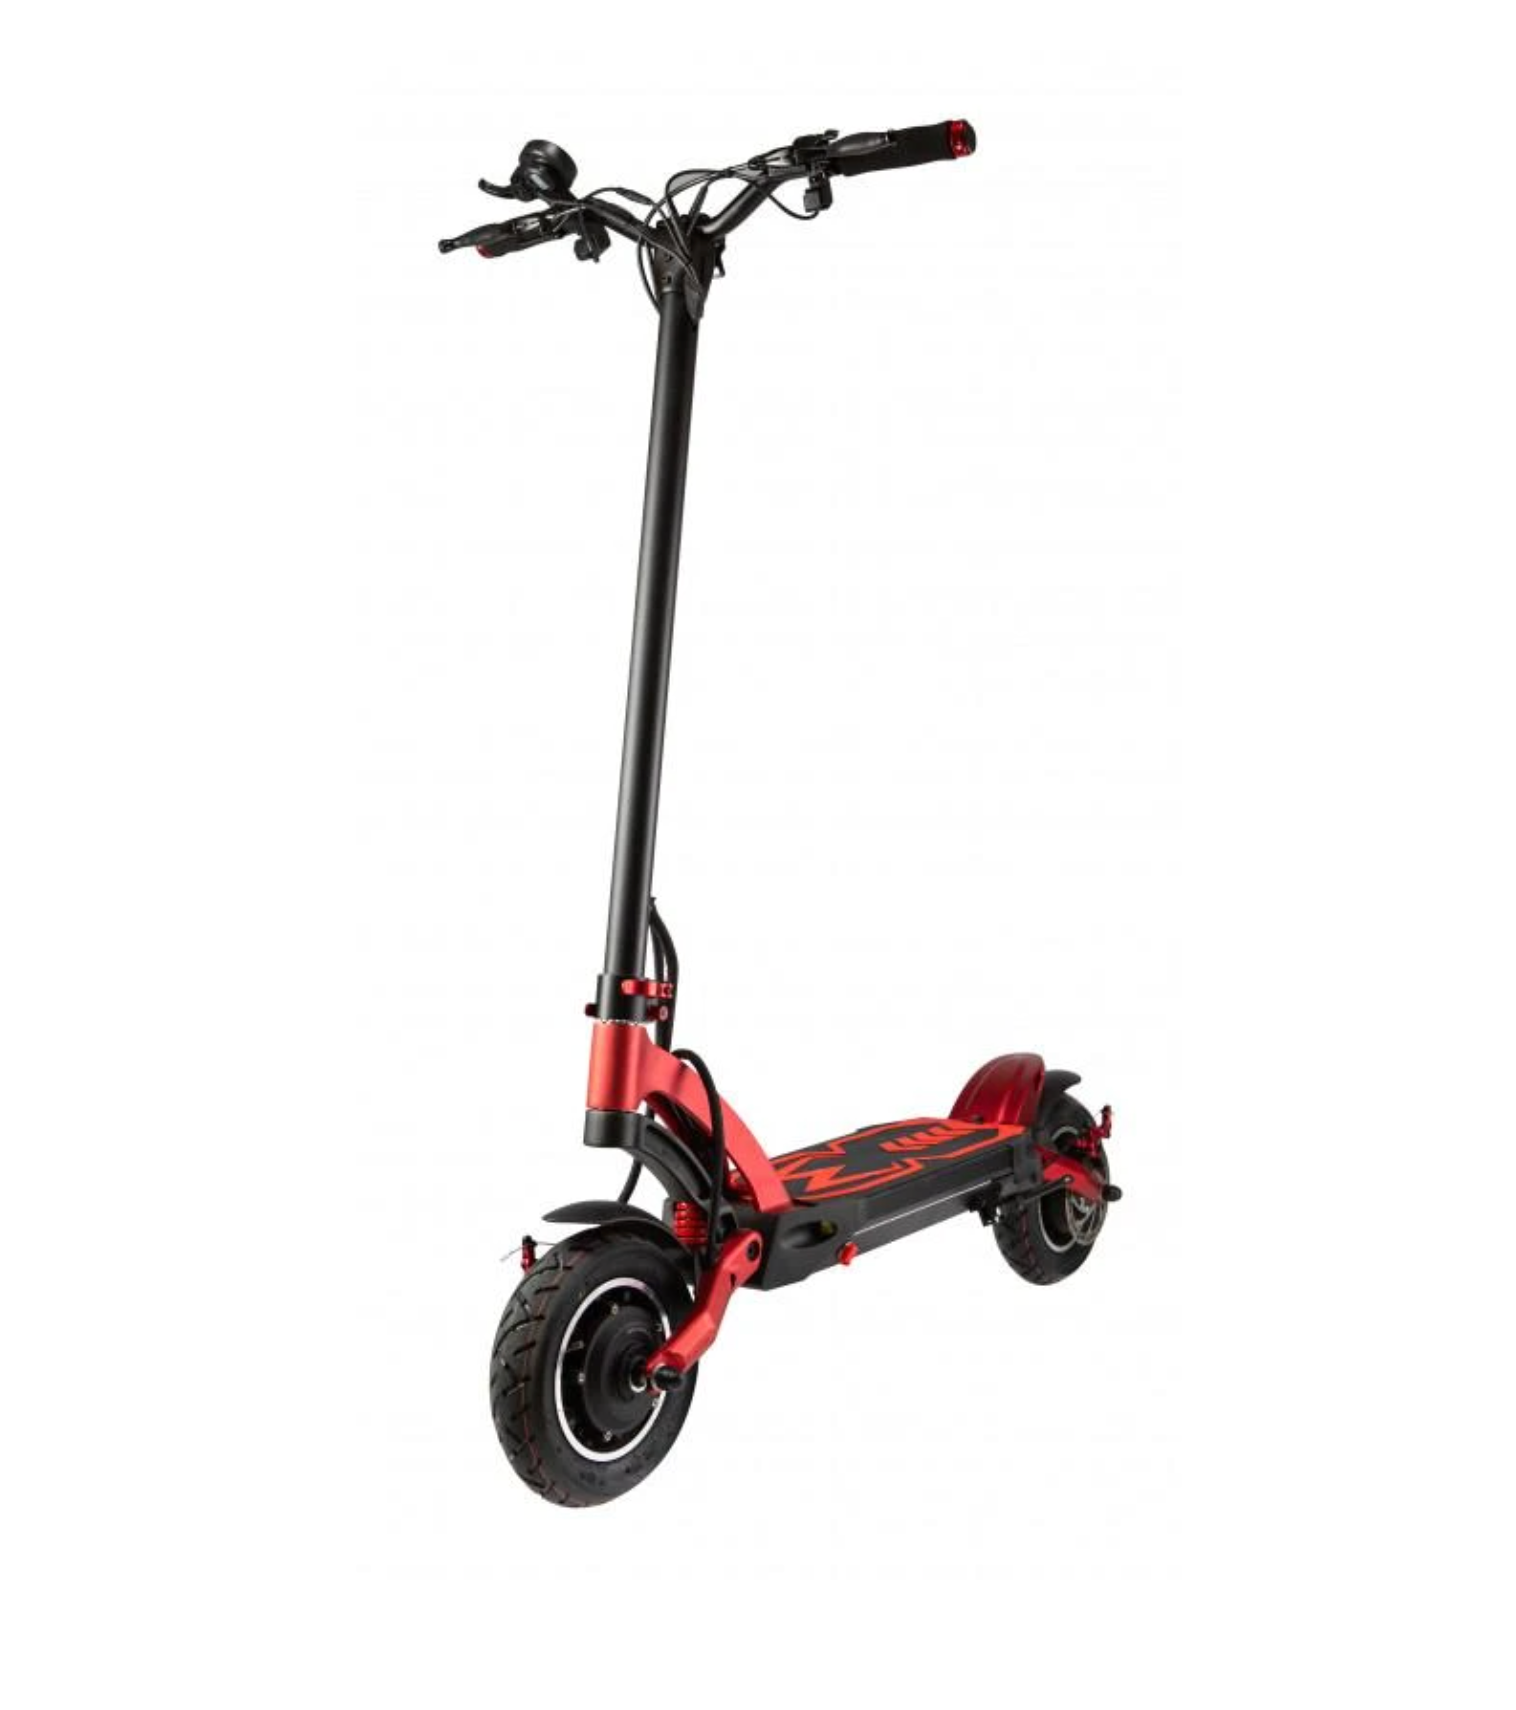 Kaabo Mantis Pro Red Electric Scooter